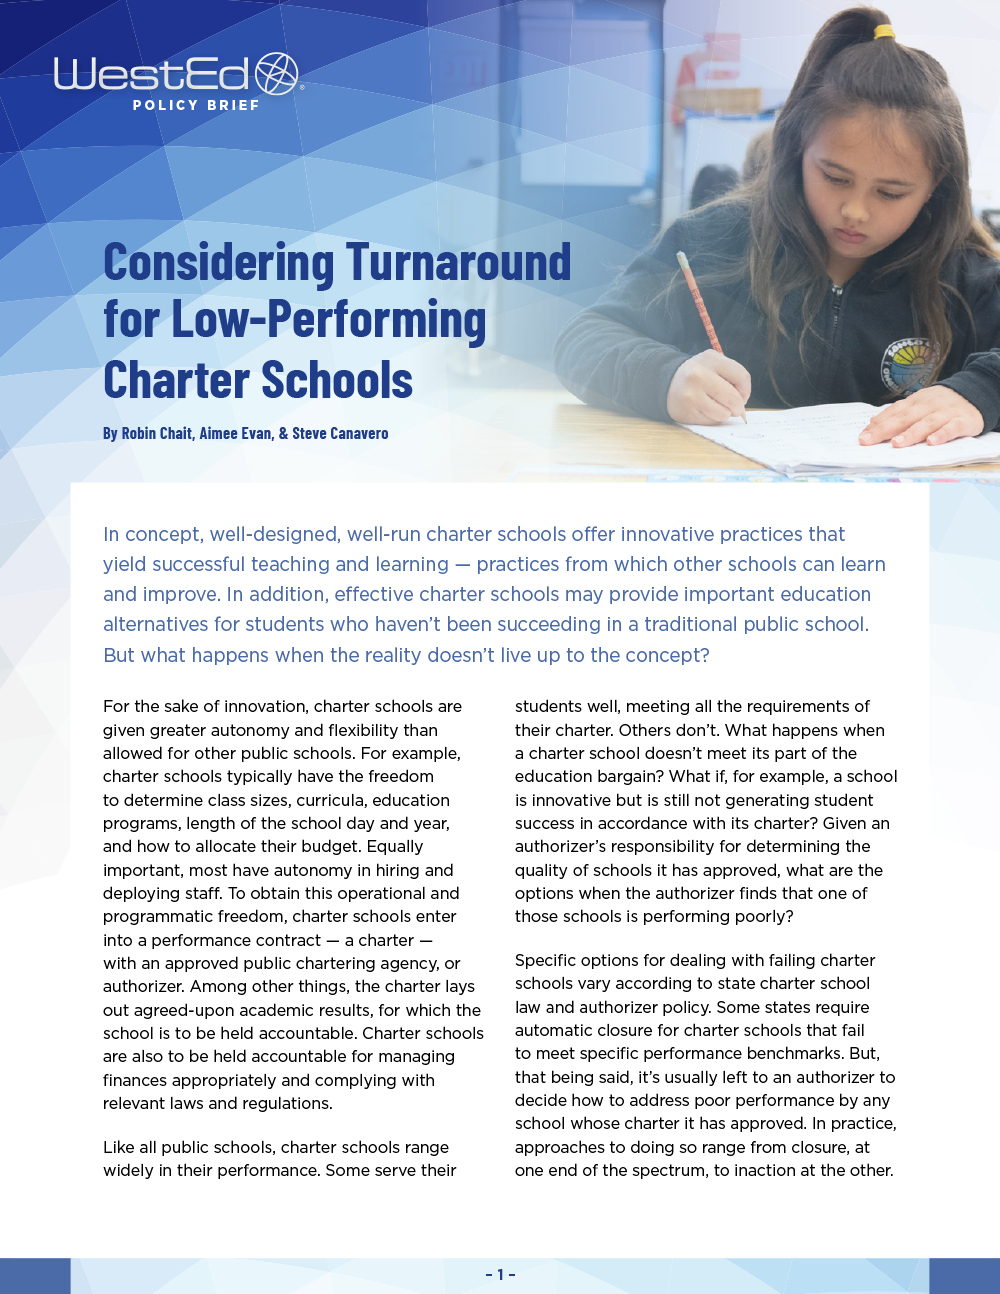 Considering Turnaround for Low-Performing Charter Schools